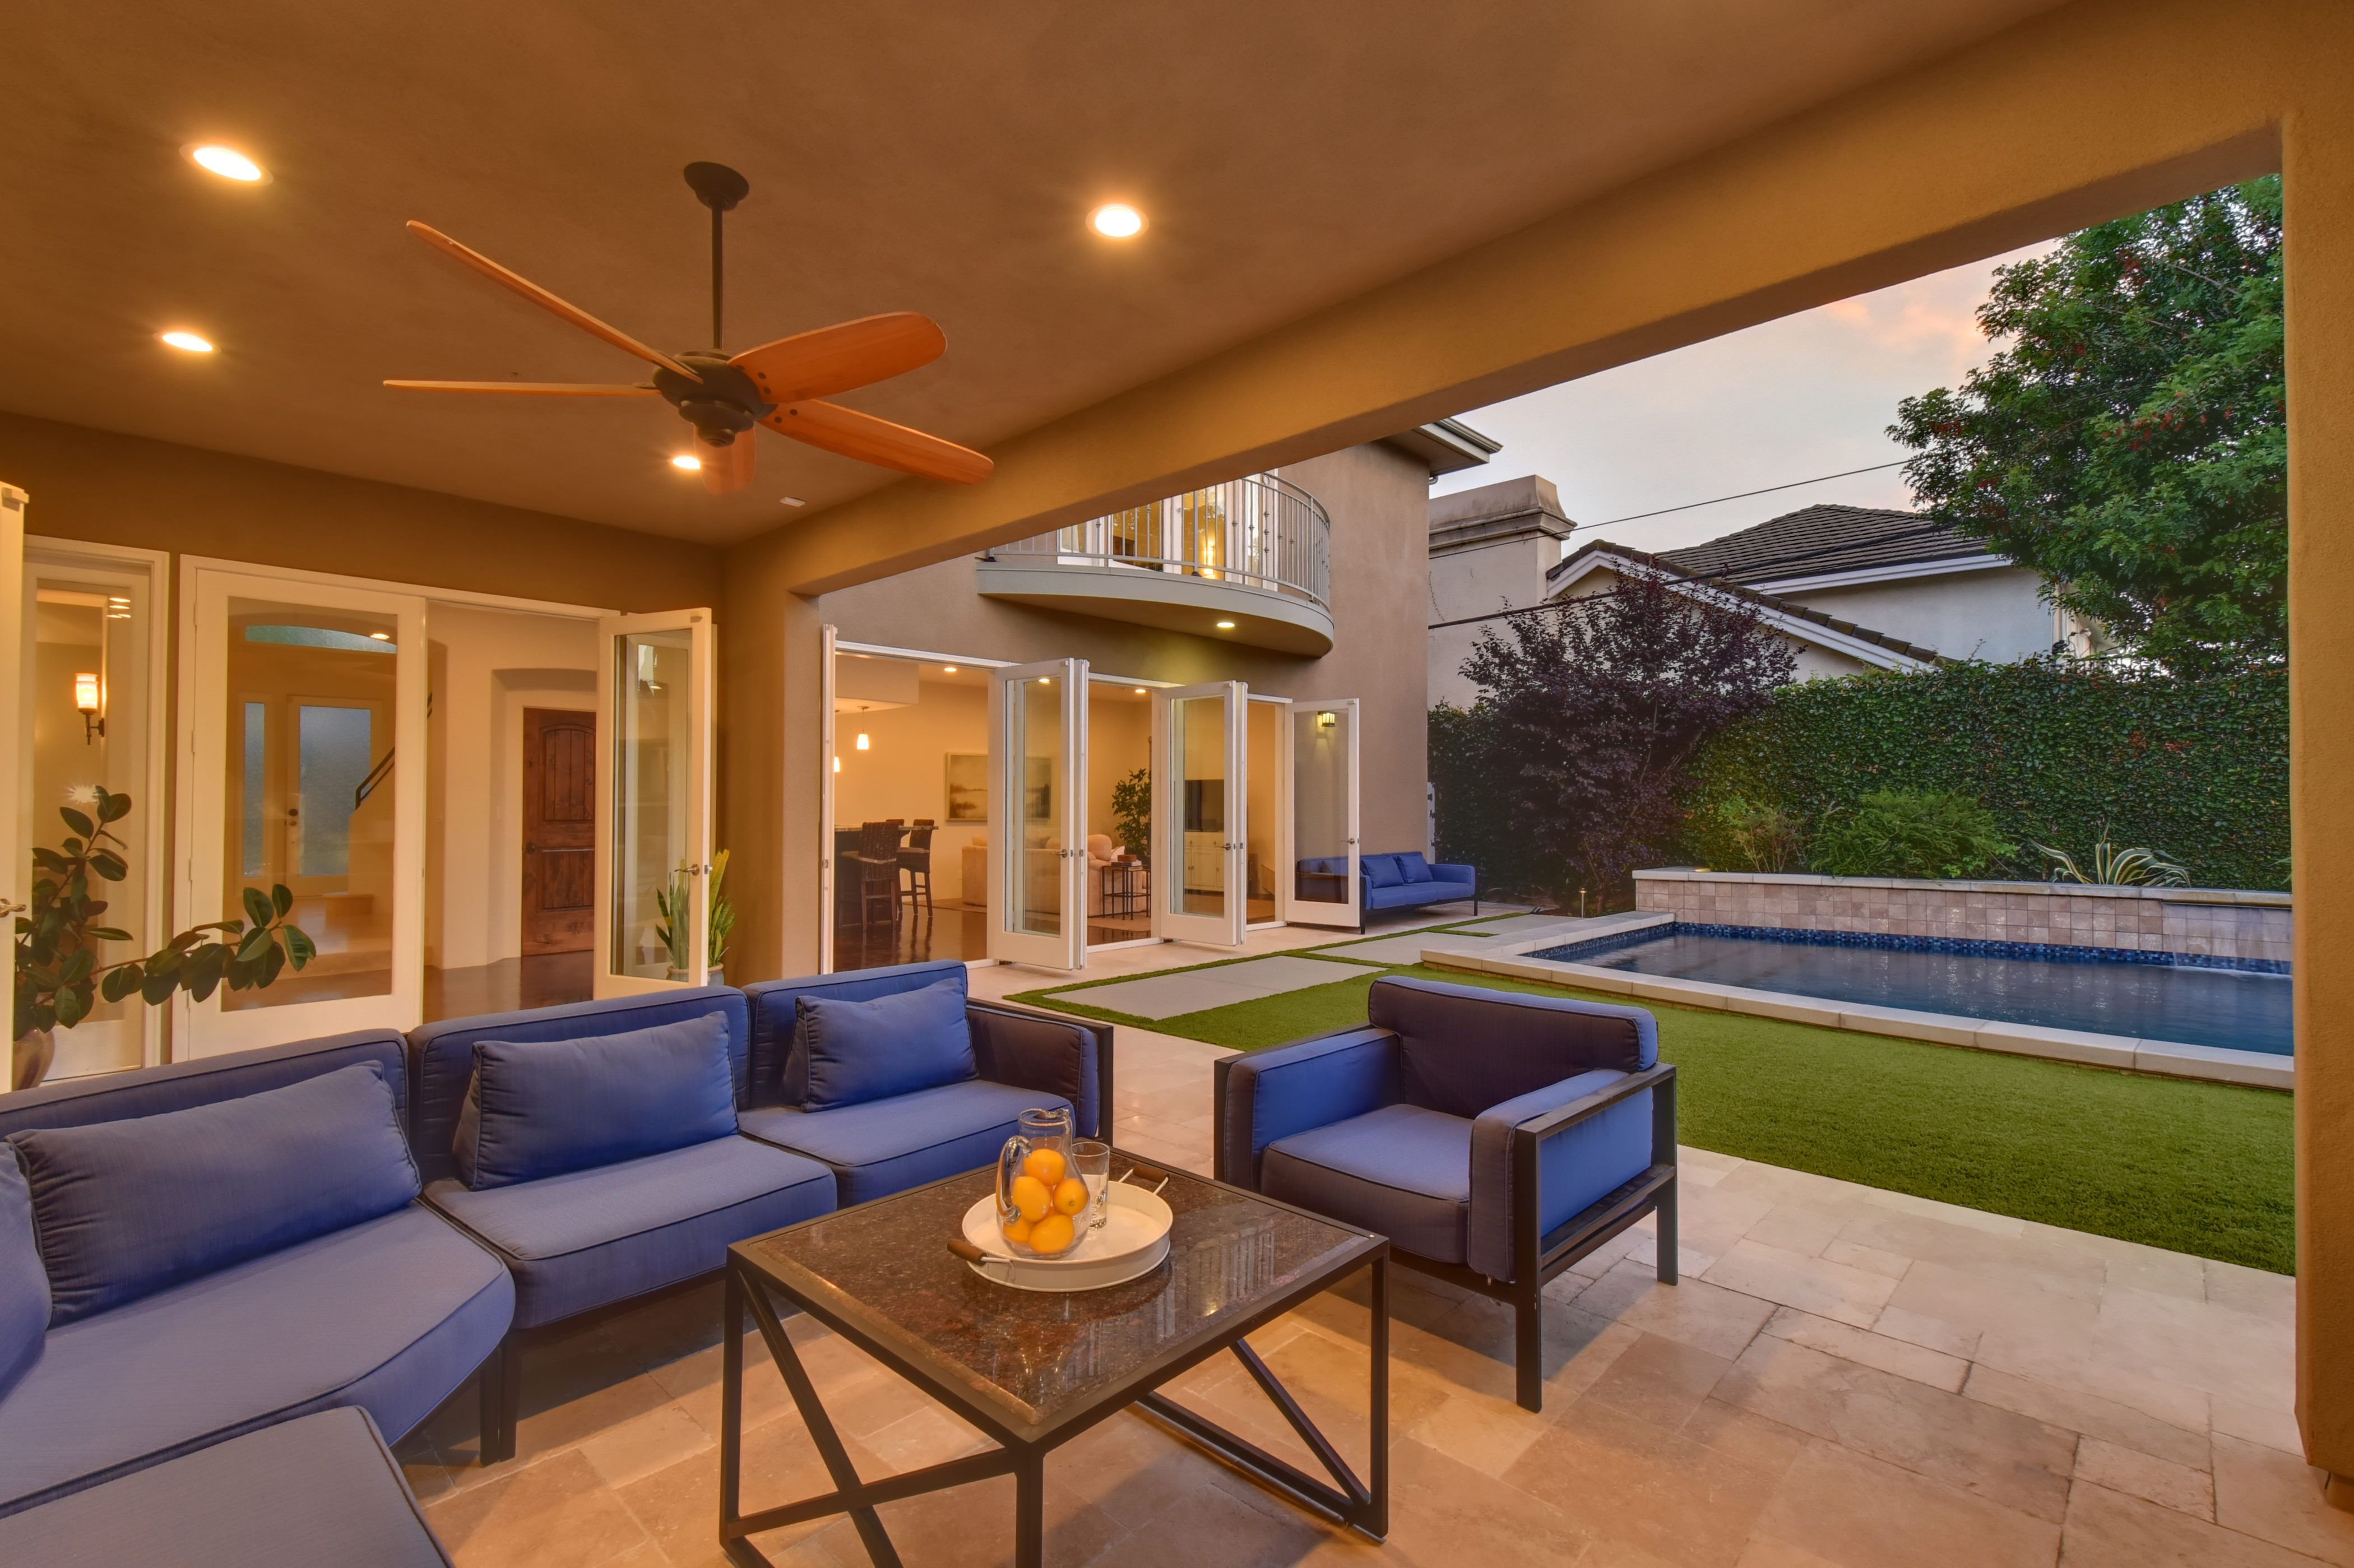 Serene Backyard Features a Covered Outdoor Living Space ... on Ab Outdoor Living id=52532